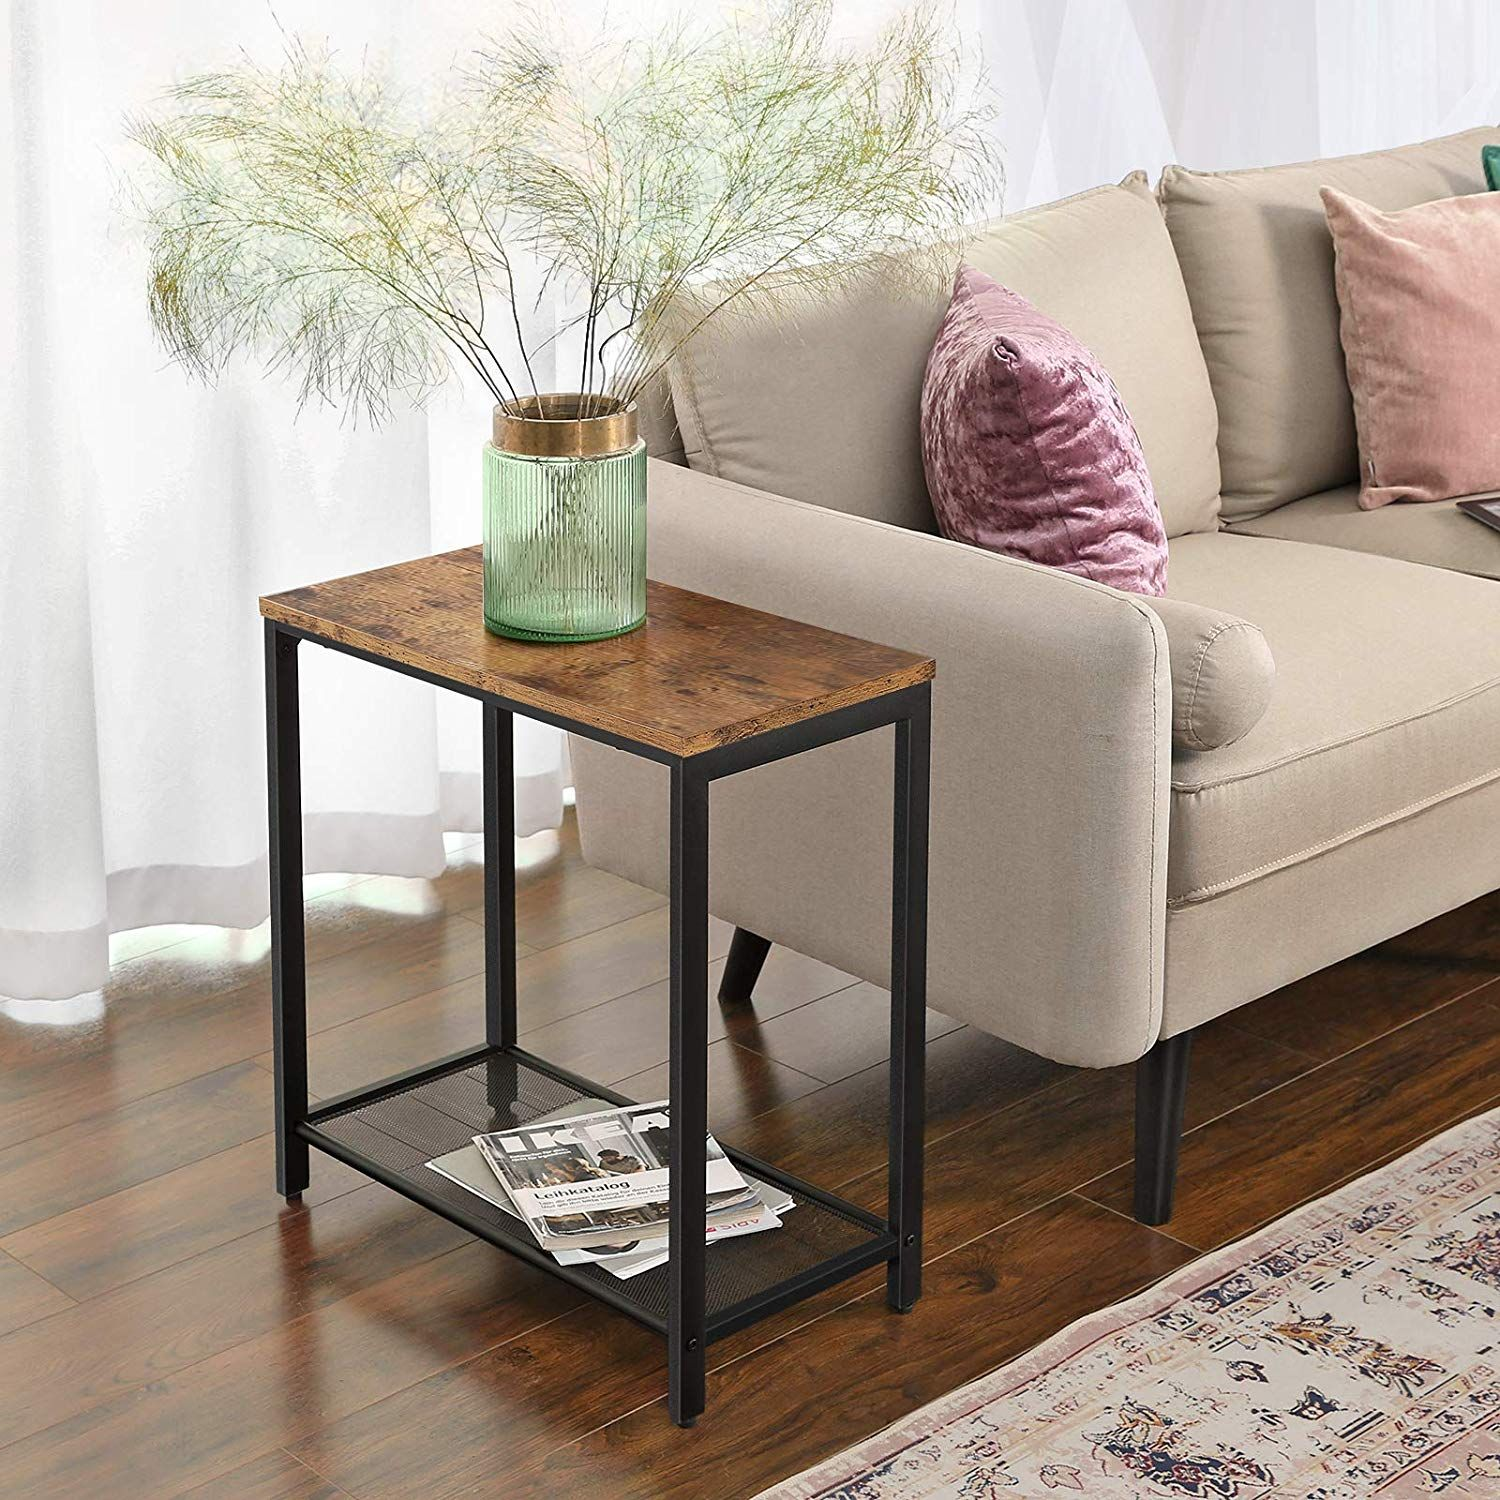 25 Collection Of Sofa Side Tables With Storages Sofa Ideas Chair Side Table End Tables With Drawers Riverside Furniture